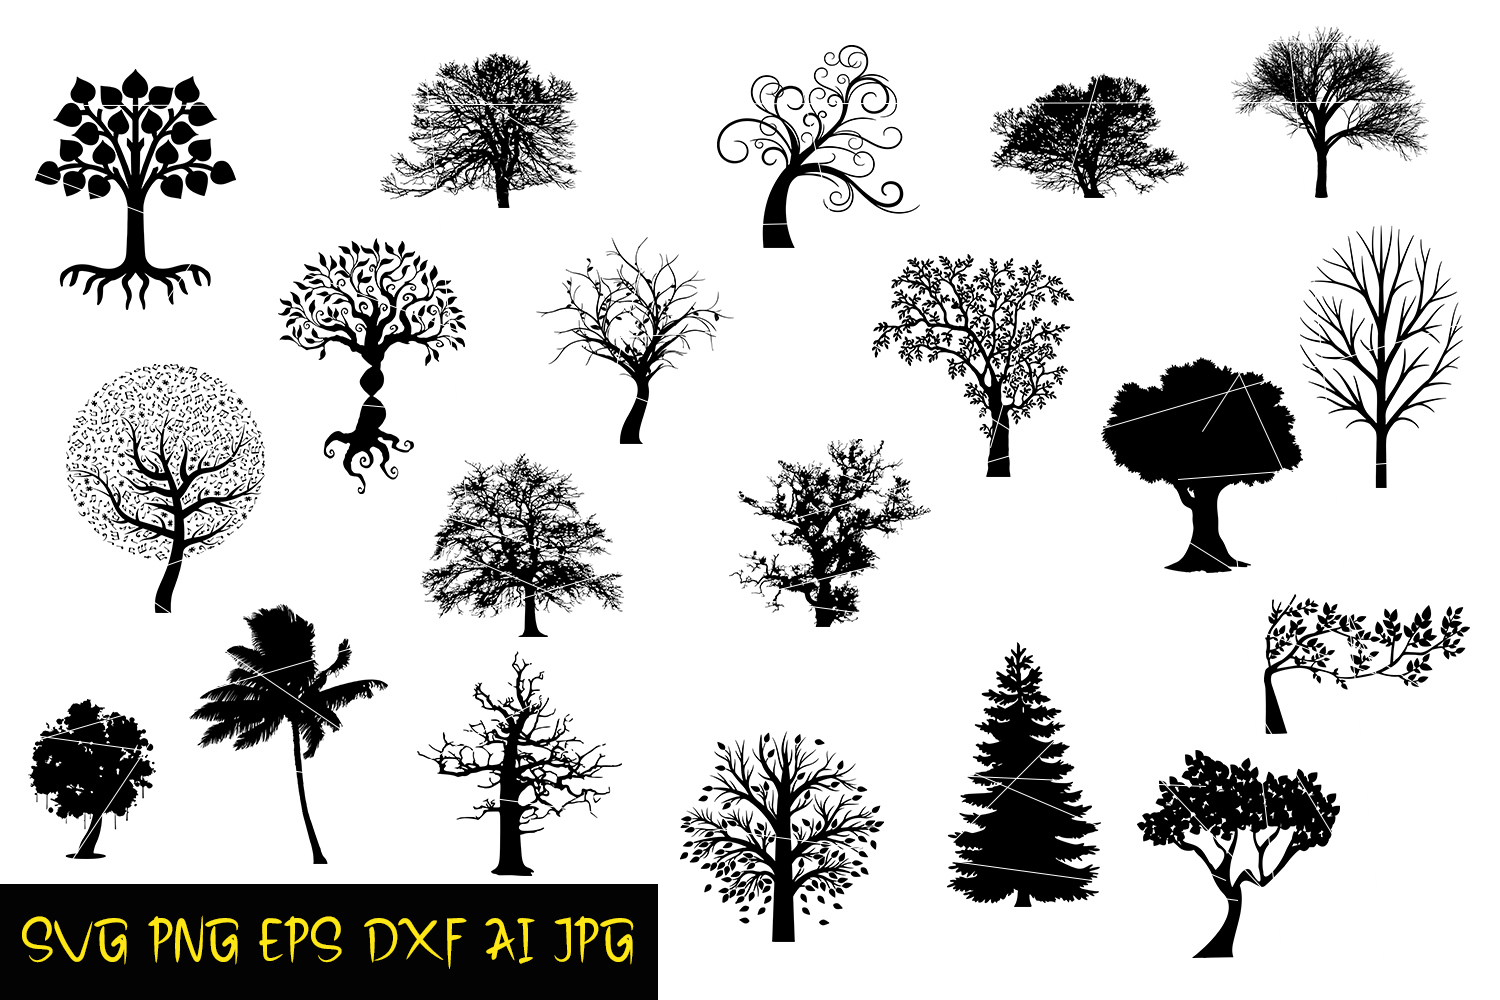 Download Free Tree Silhouettes Graphic By Denysdigitalshop Creative Fabrica for Cricut Explore, Silhouette and other cutting machines.